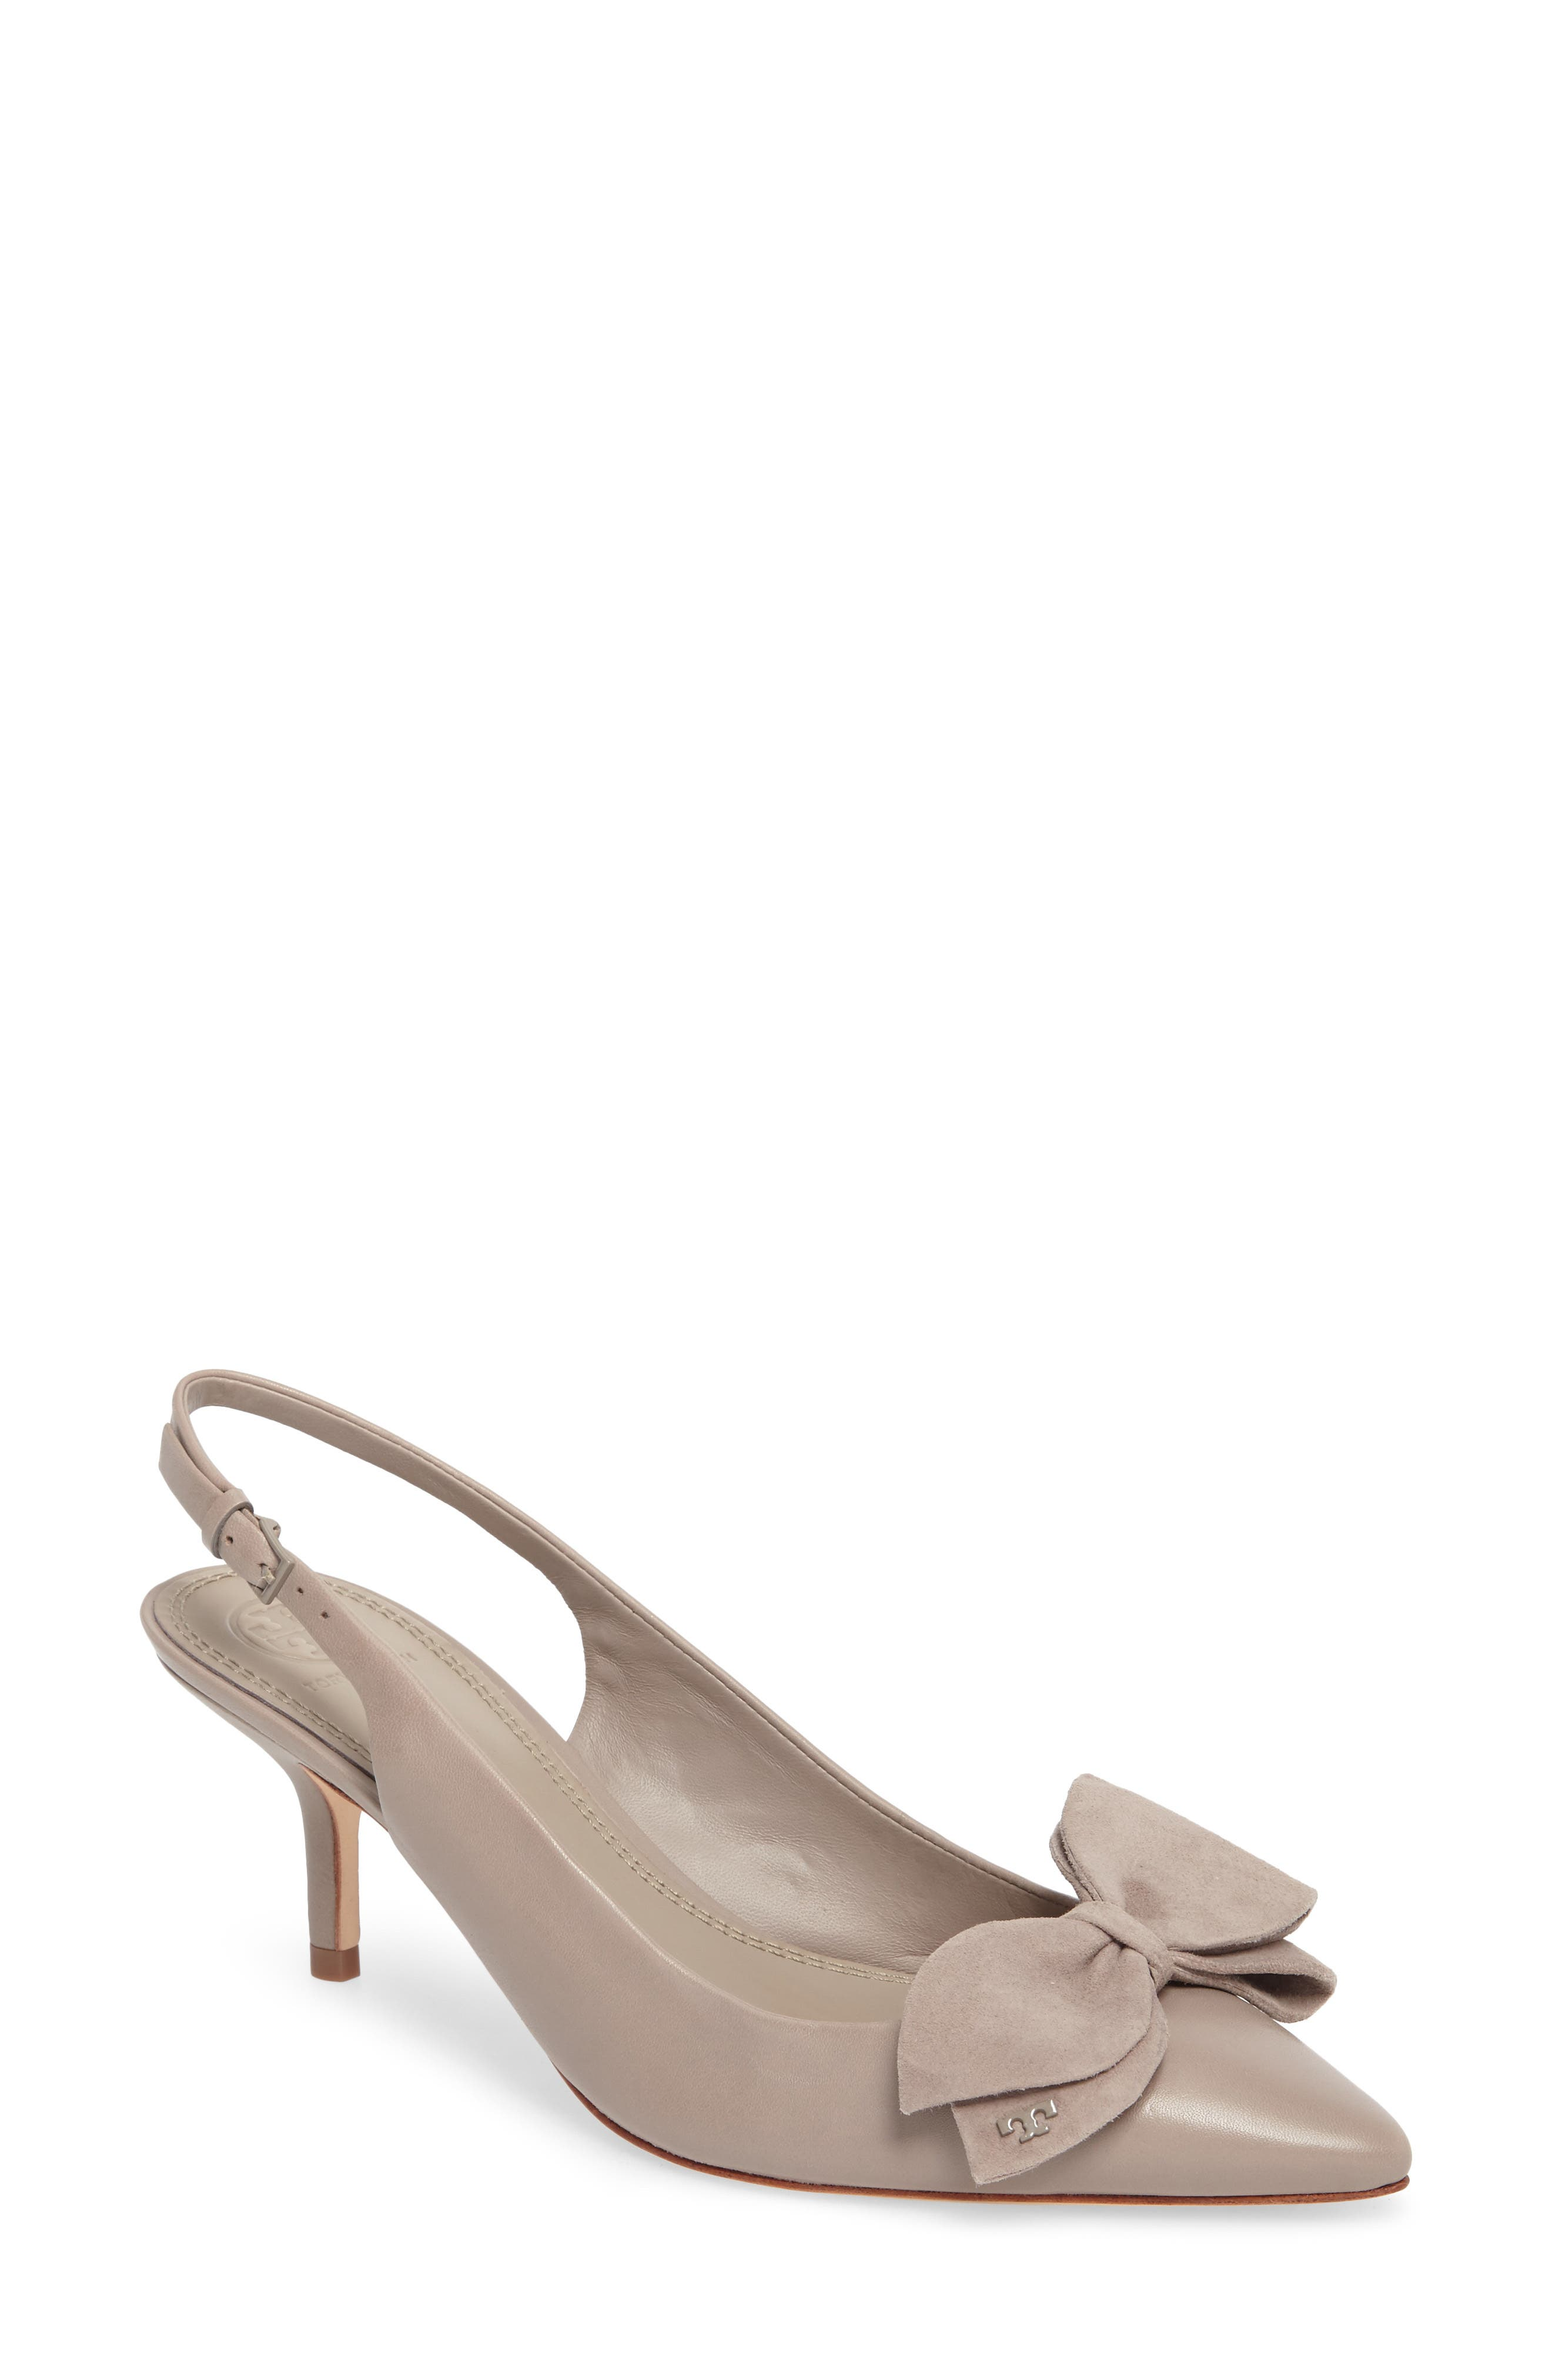 46dd677126b Tory Burch Rosalind Slingback Pump In Dust Storm